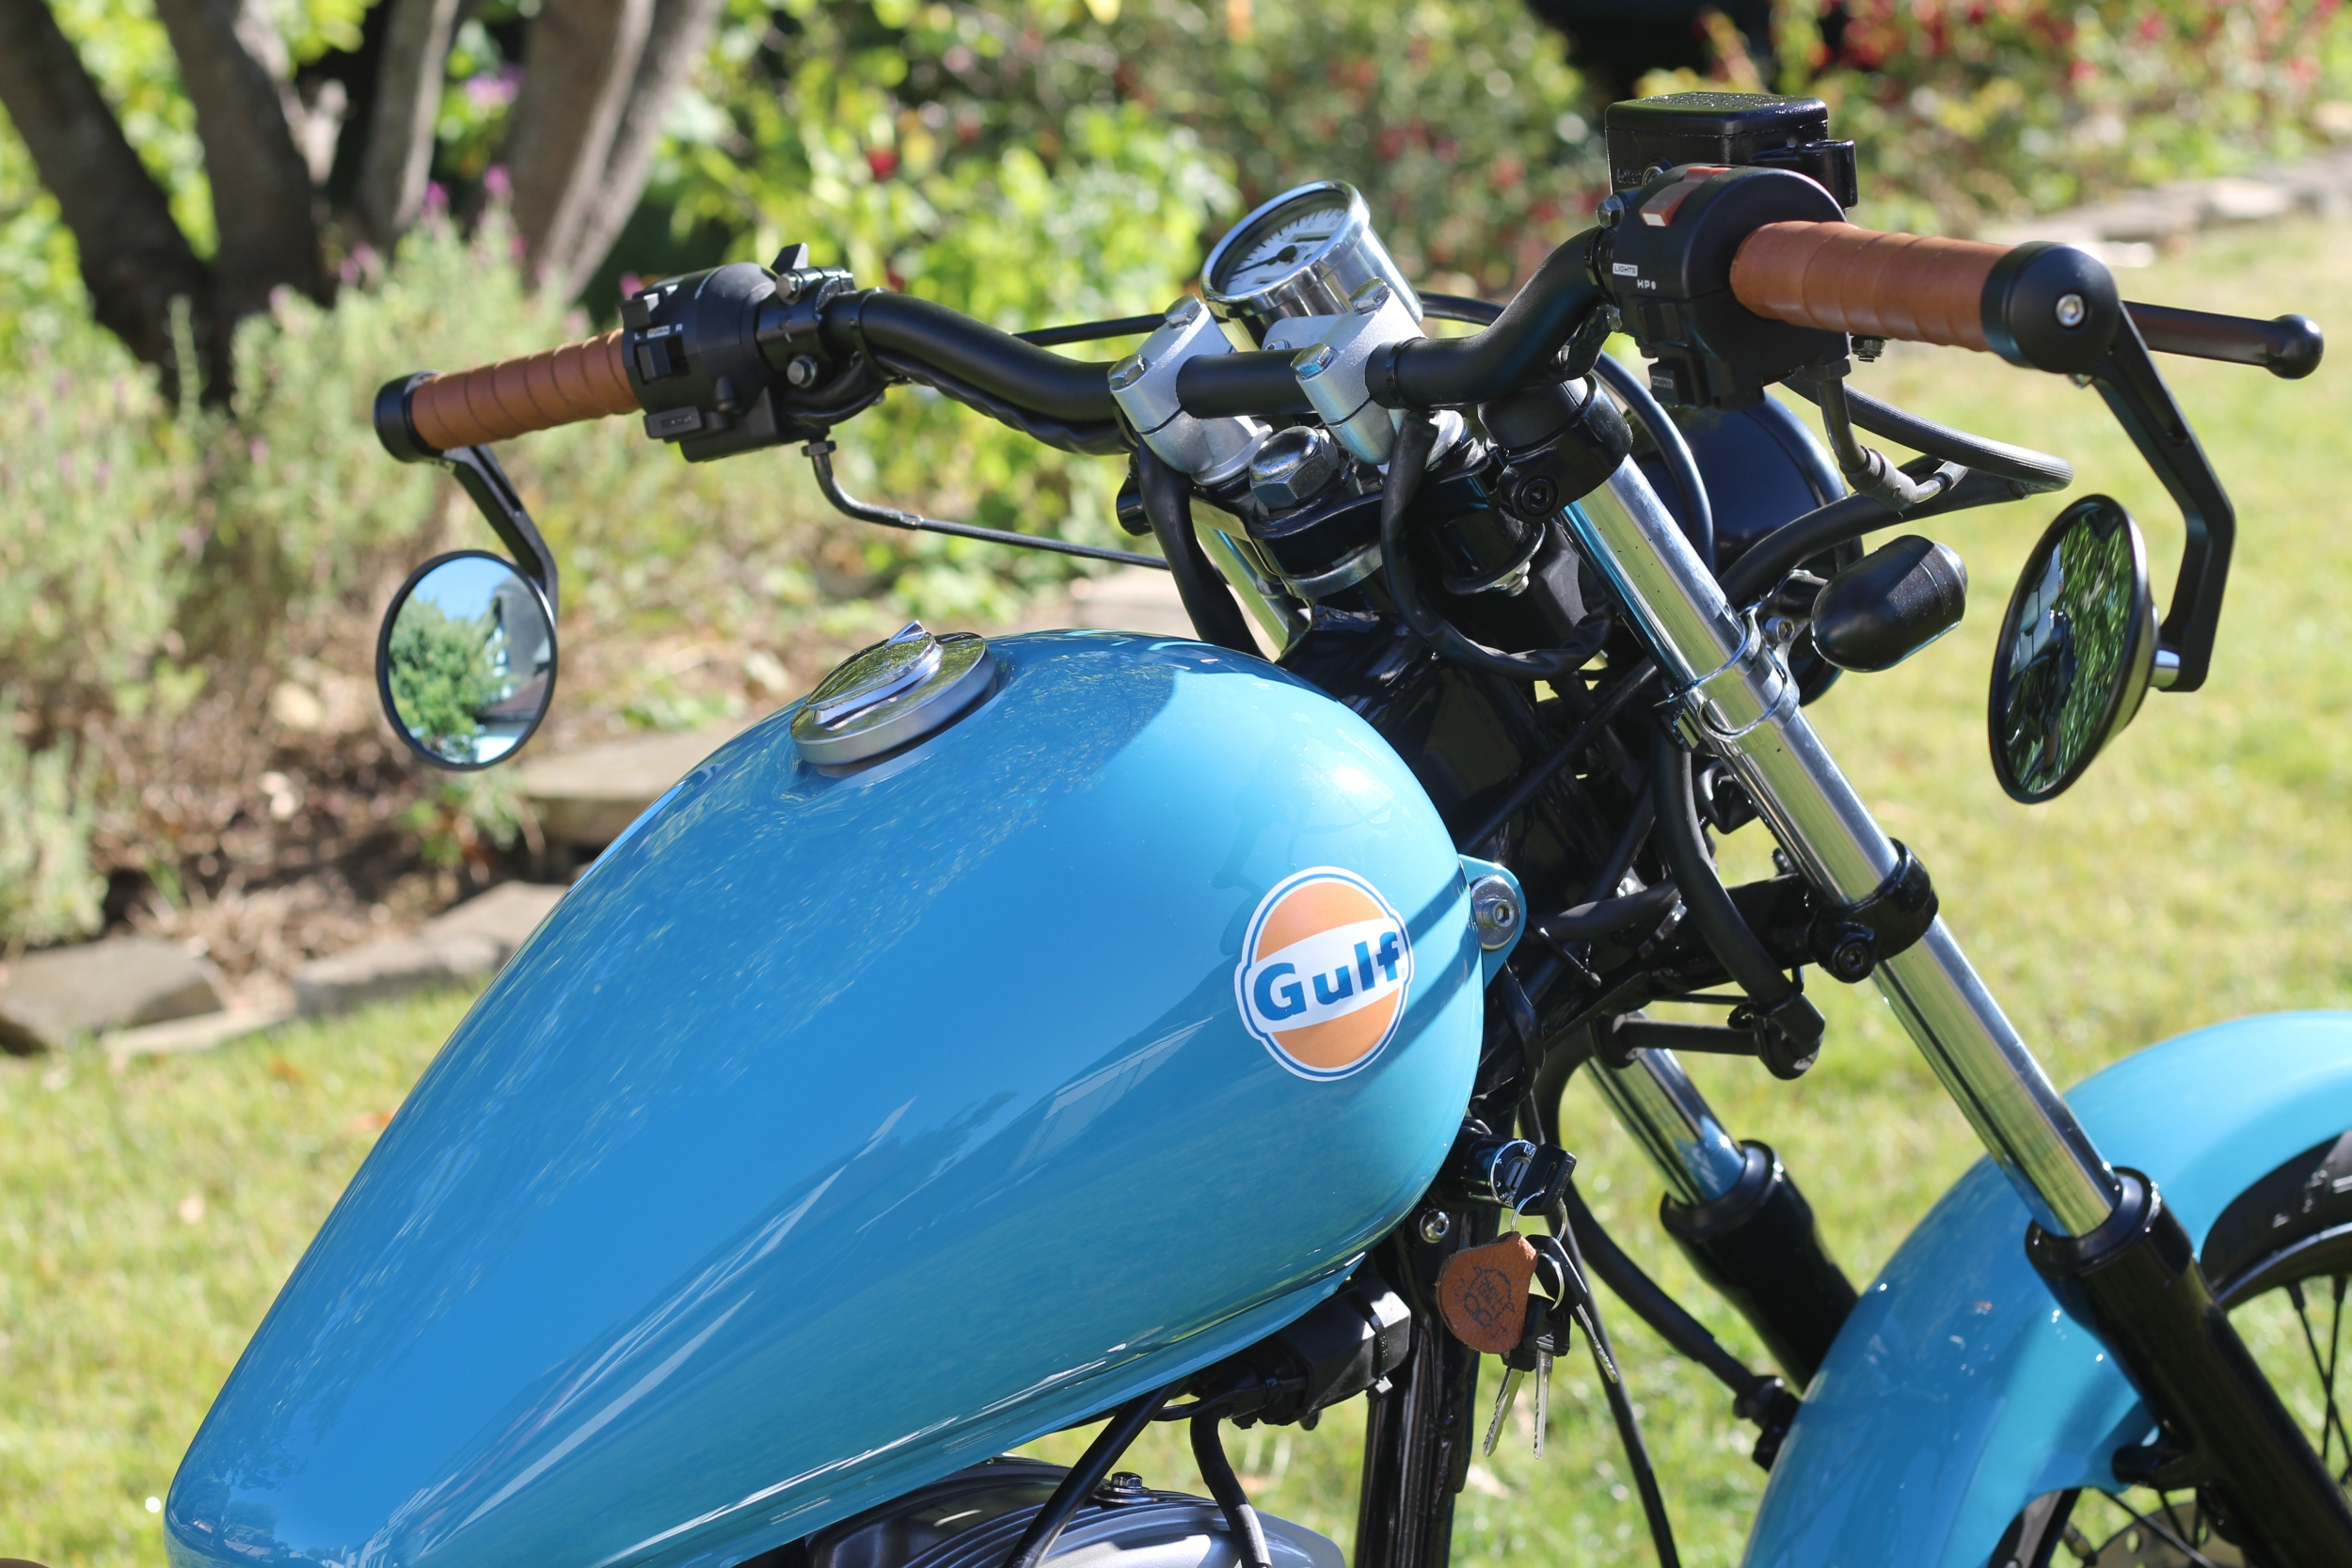 GULF Honda Rebel 125cc